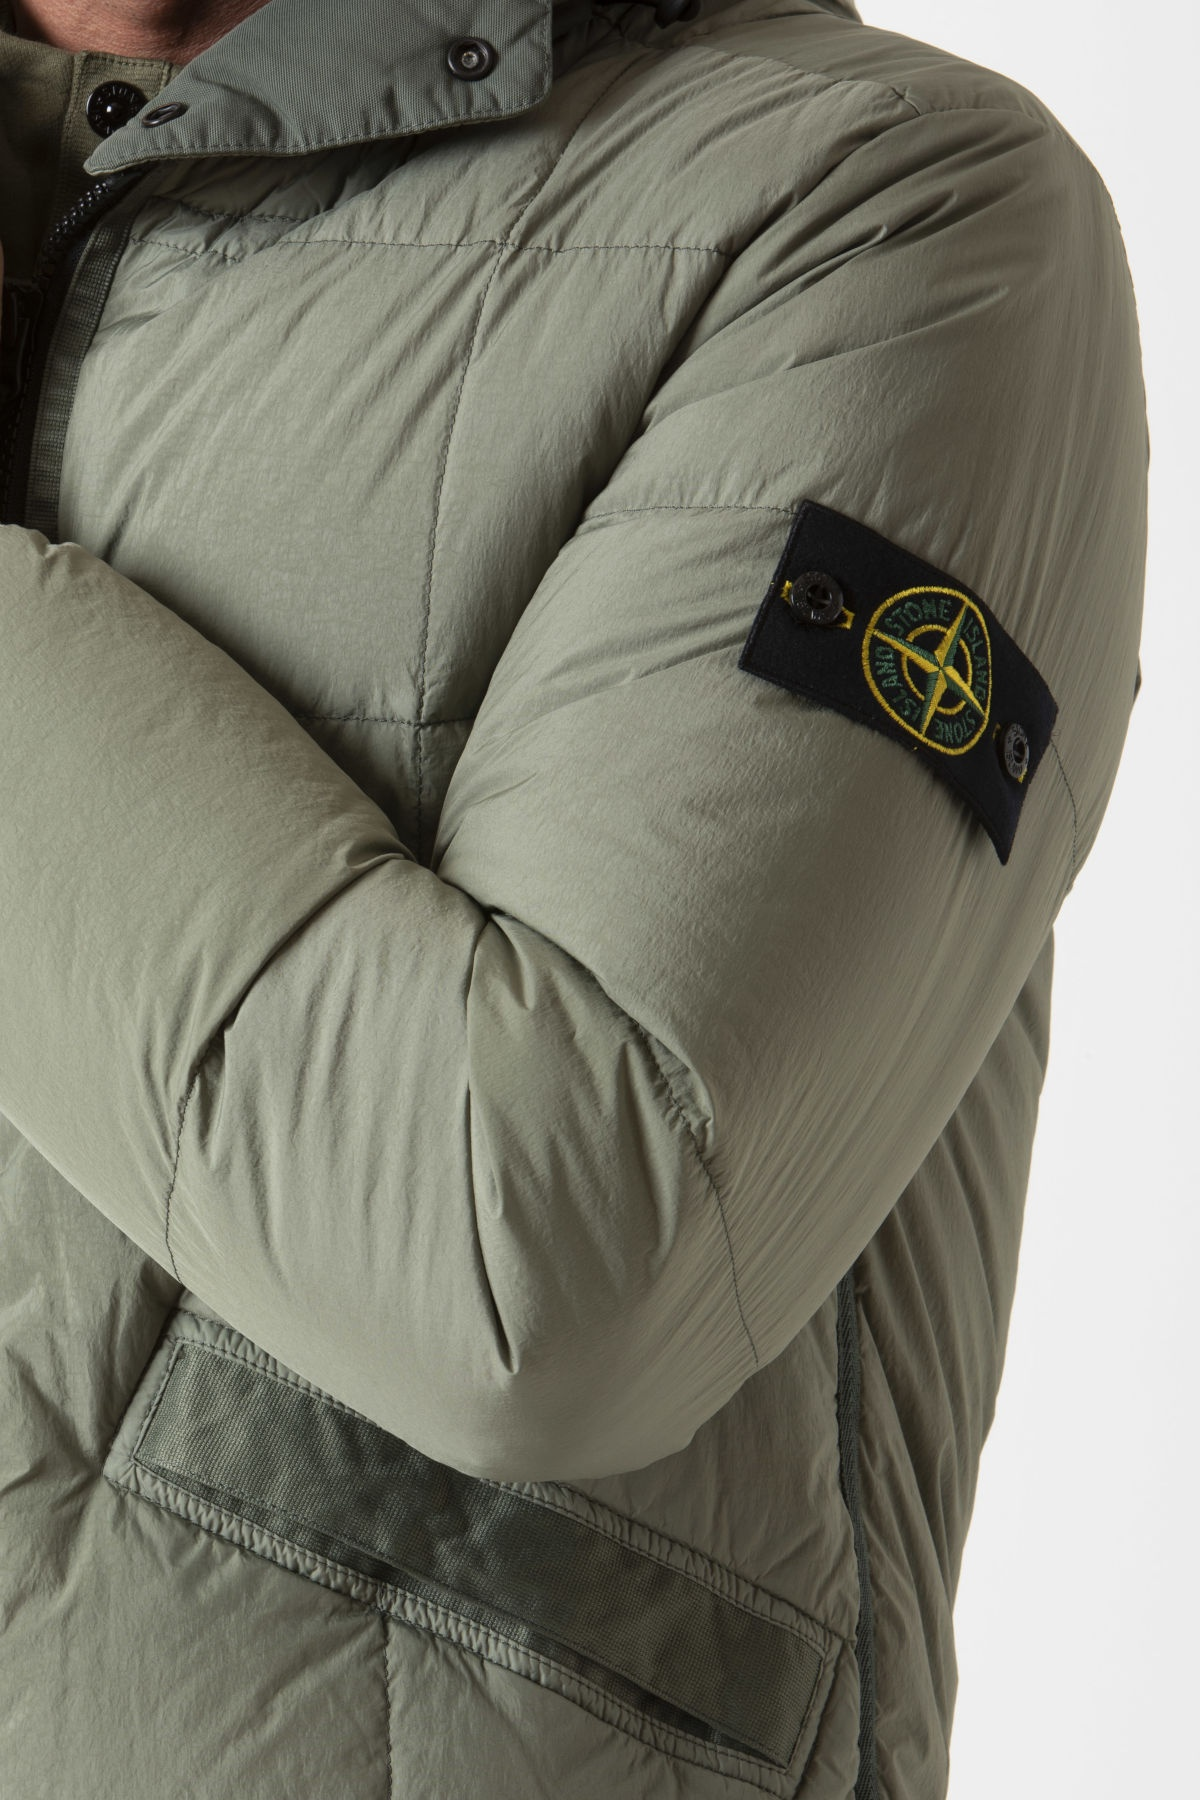 Giubbotto GARMENT DYED CRINKLE REPS NY DOWN per uomo STONE ISLAND A/I 19-20